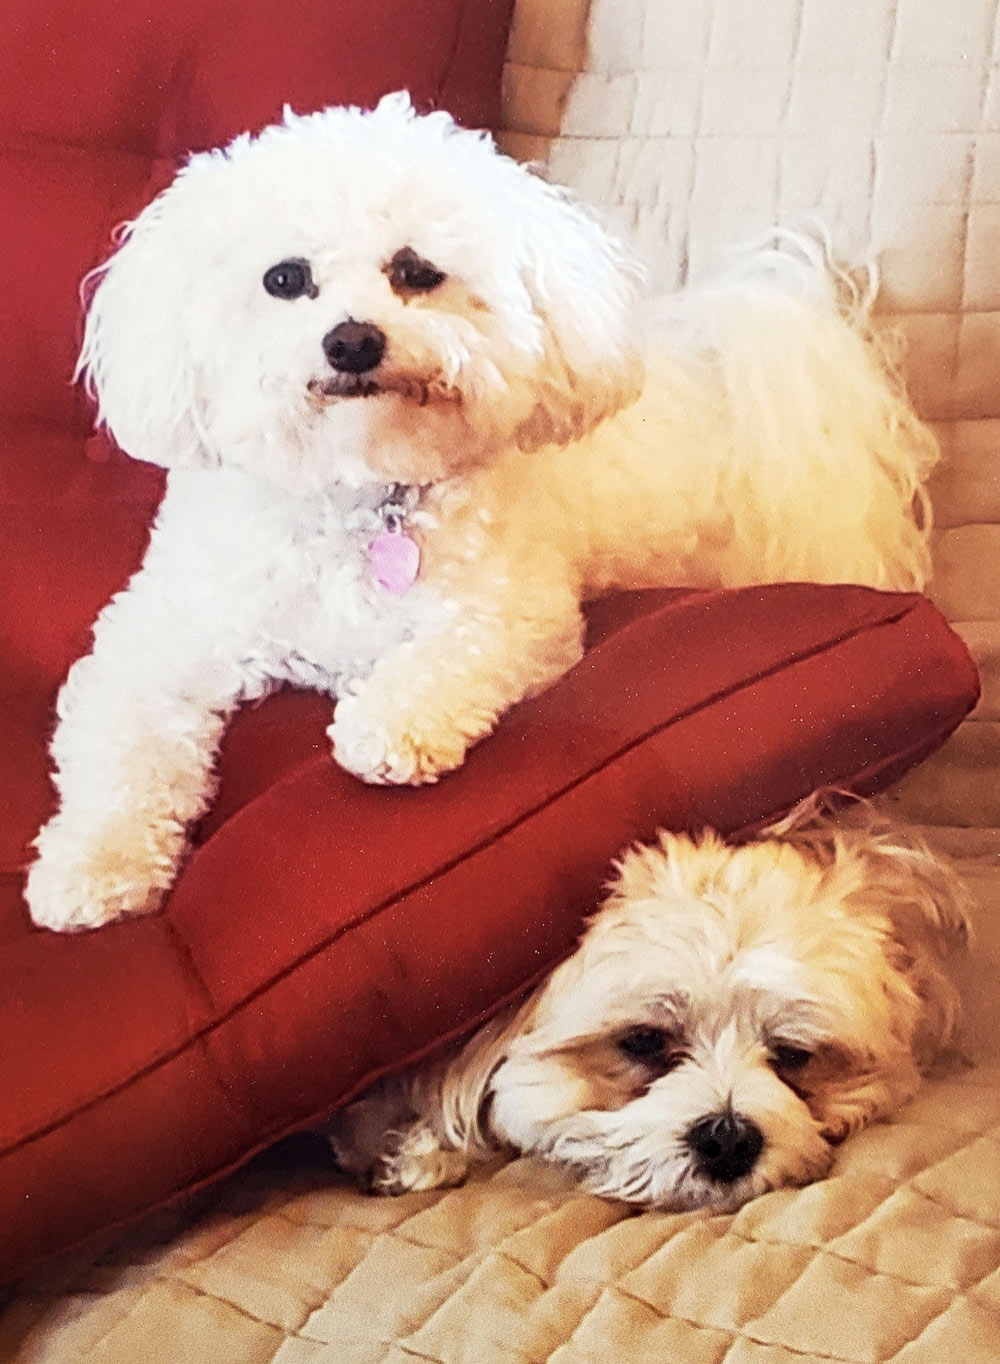 Meet Lexi and Dolli. Owner Sandee says they are such good buddies!